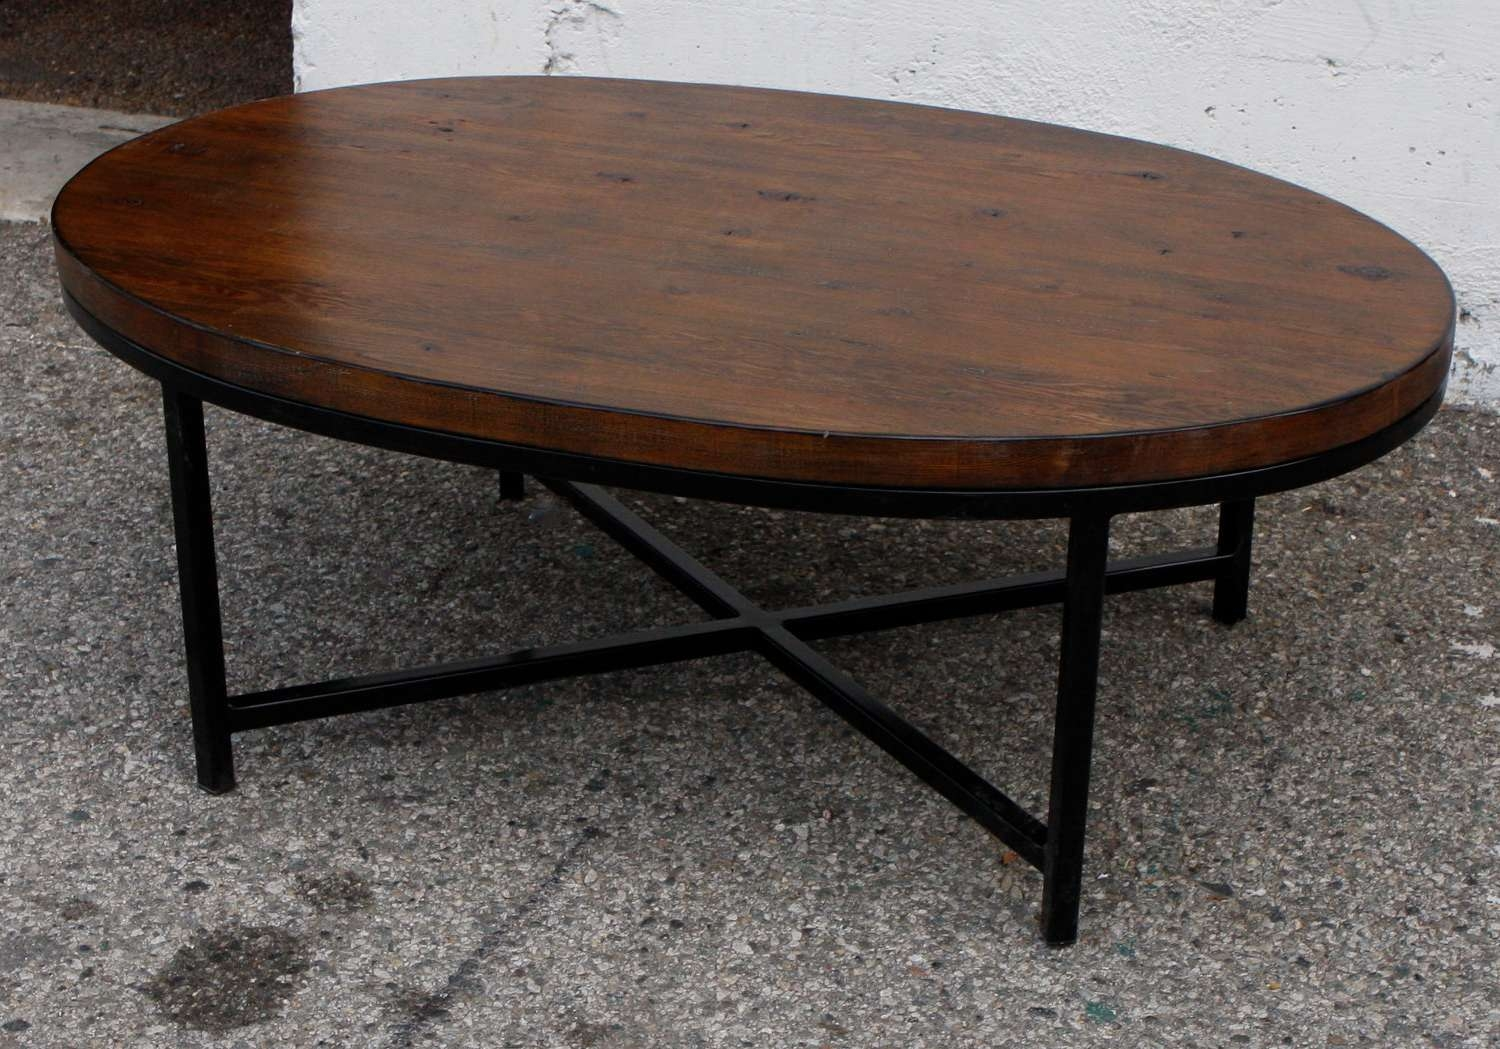 Favorite Dark Wood Coffee Tables Pertaining To Coffee Tables : Dazzling Wooden Dark Wood Coffee Table With (View 15 of 20)